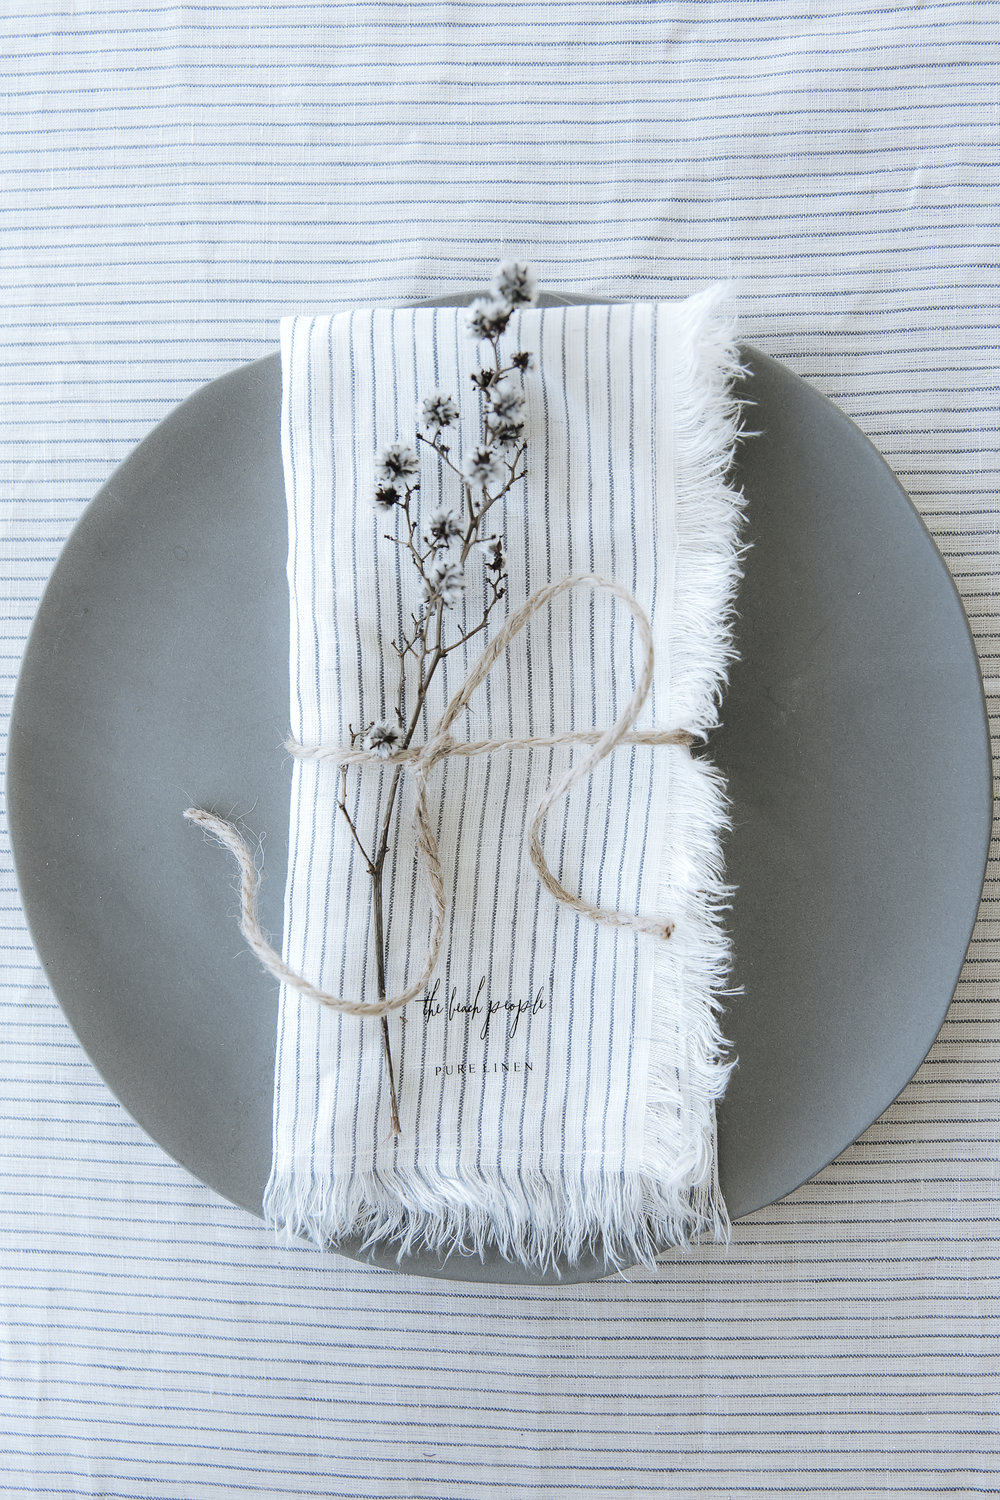 Linen Tablecloth in Stripe, $89.00. Linen Napkins 4 pack in Stripe, $49.00.